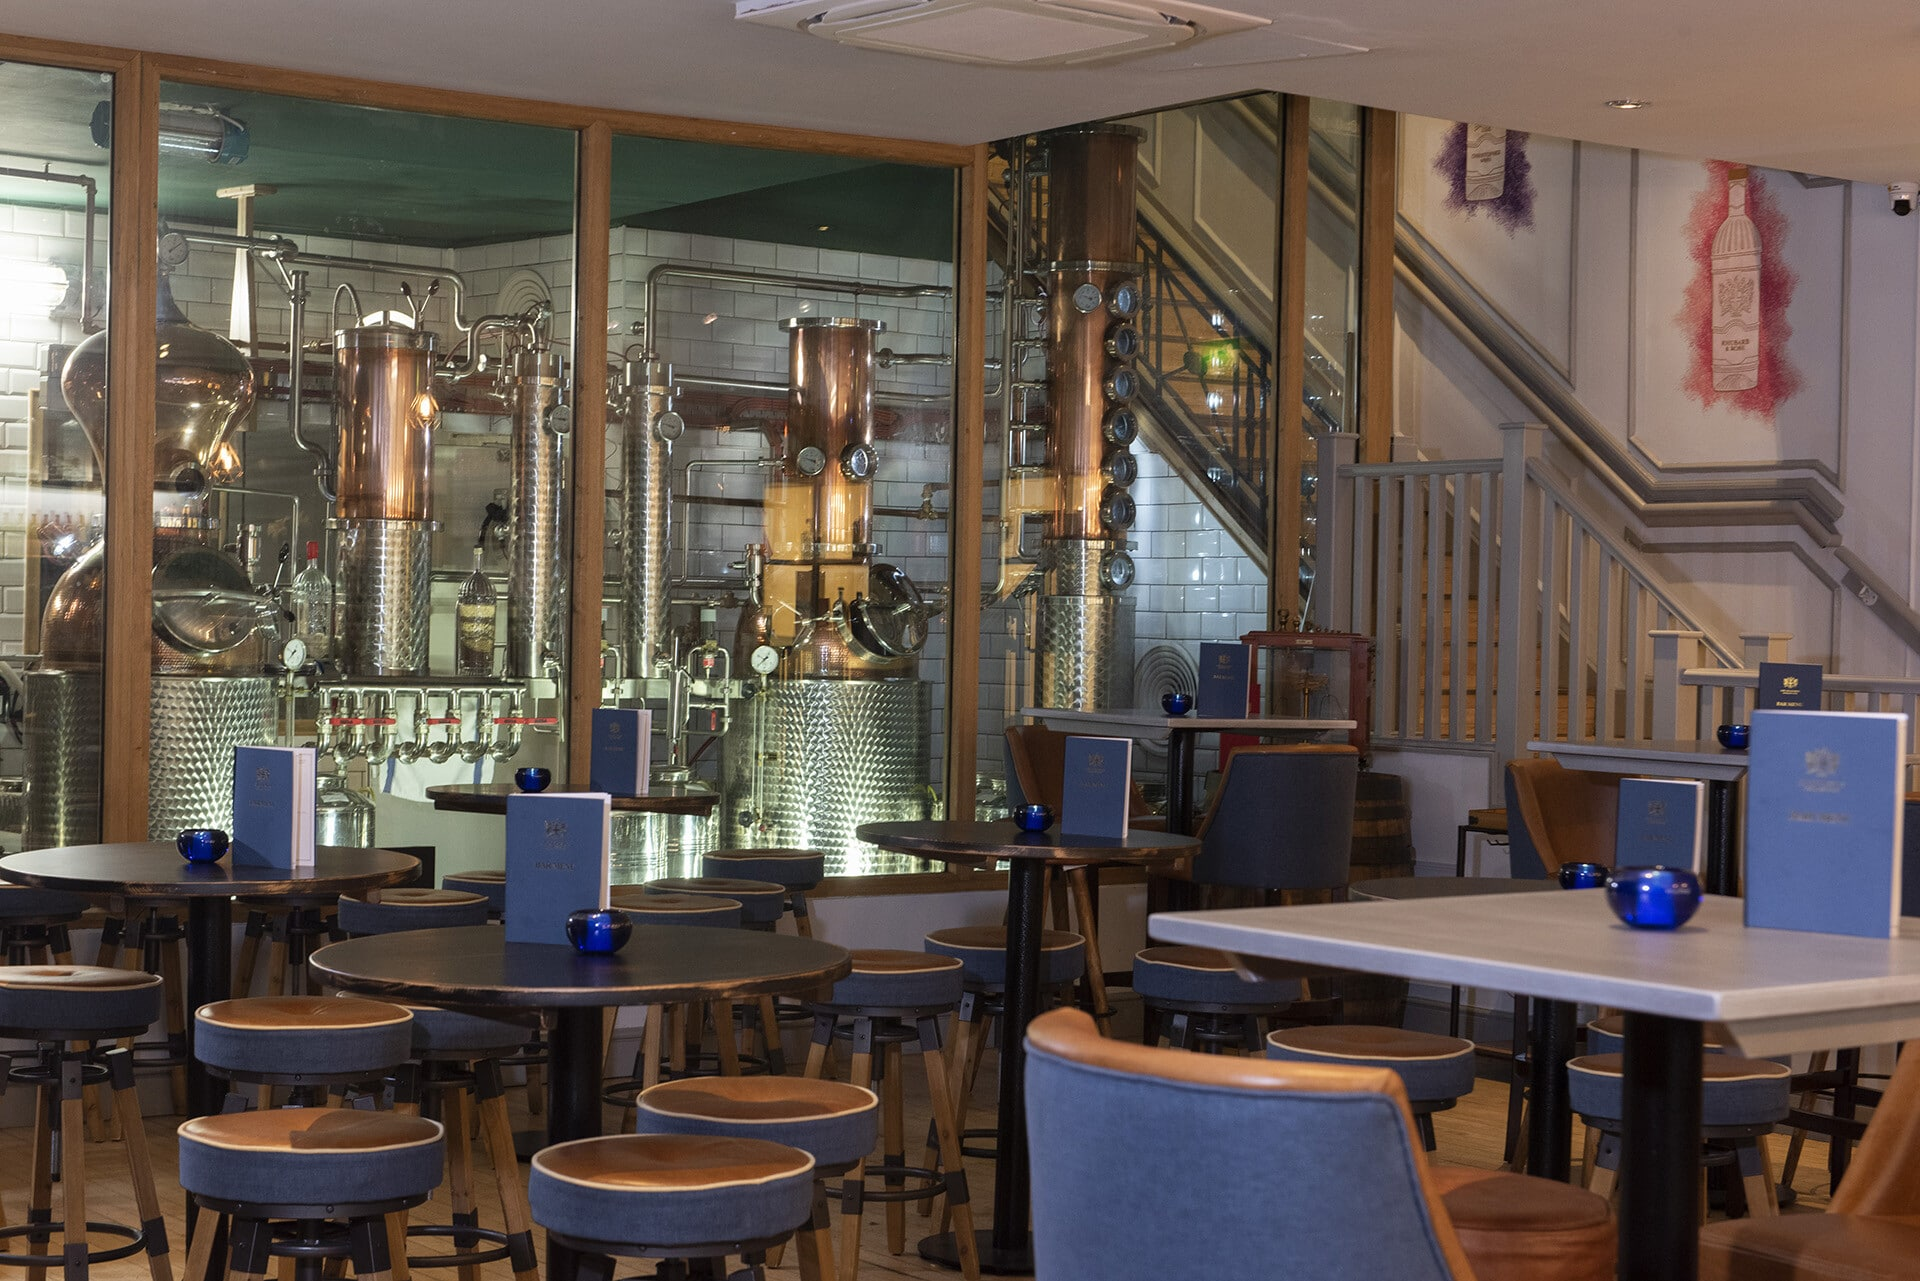 The bar at the City of London Gin Distillery